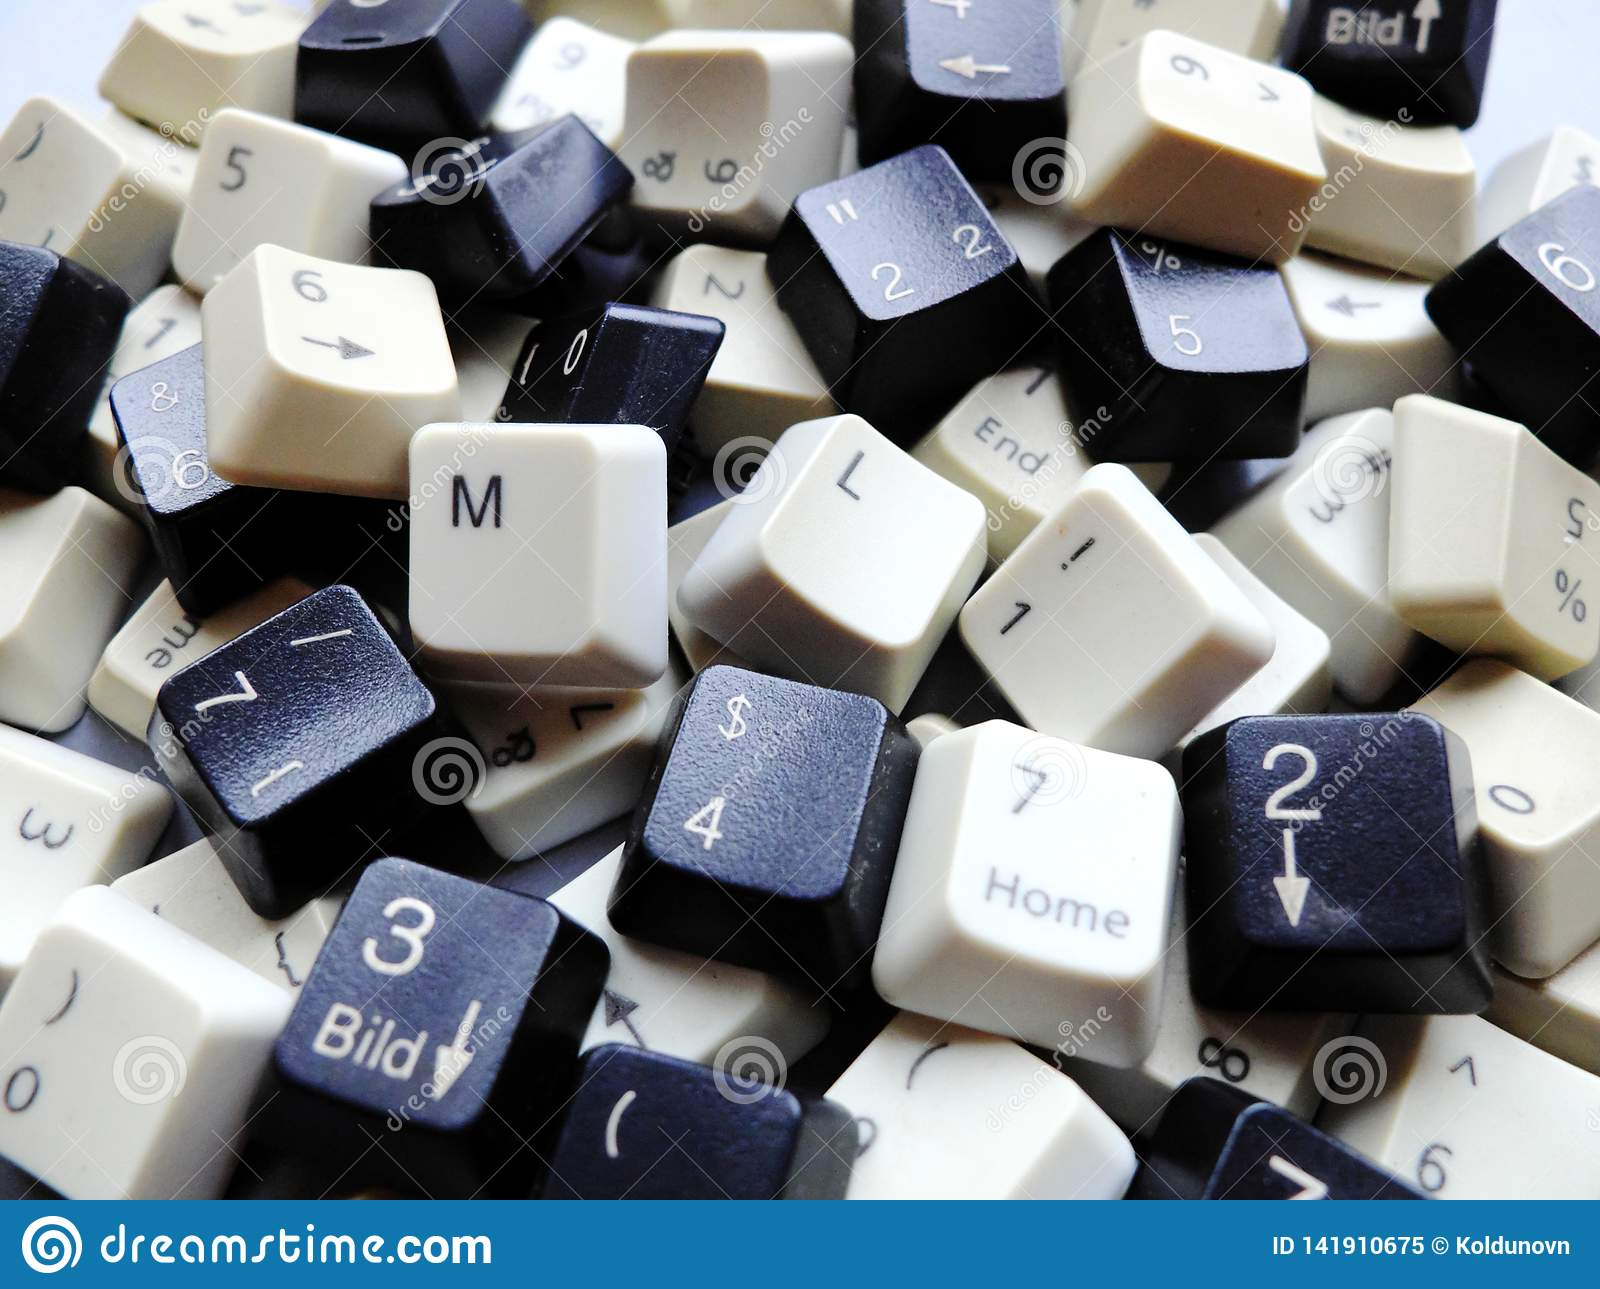 Black and white computer keyboard keys, mostly numeric with ML Machine learning buttons at the front. Concept of unstructured